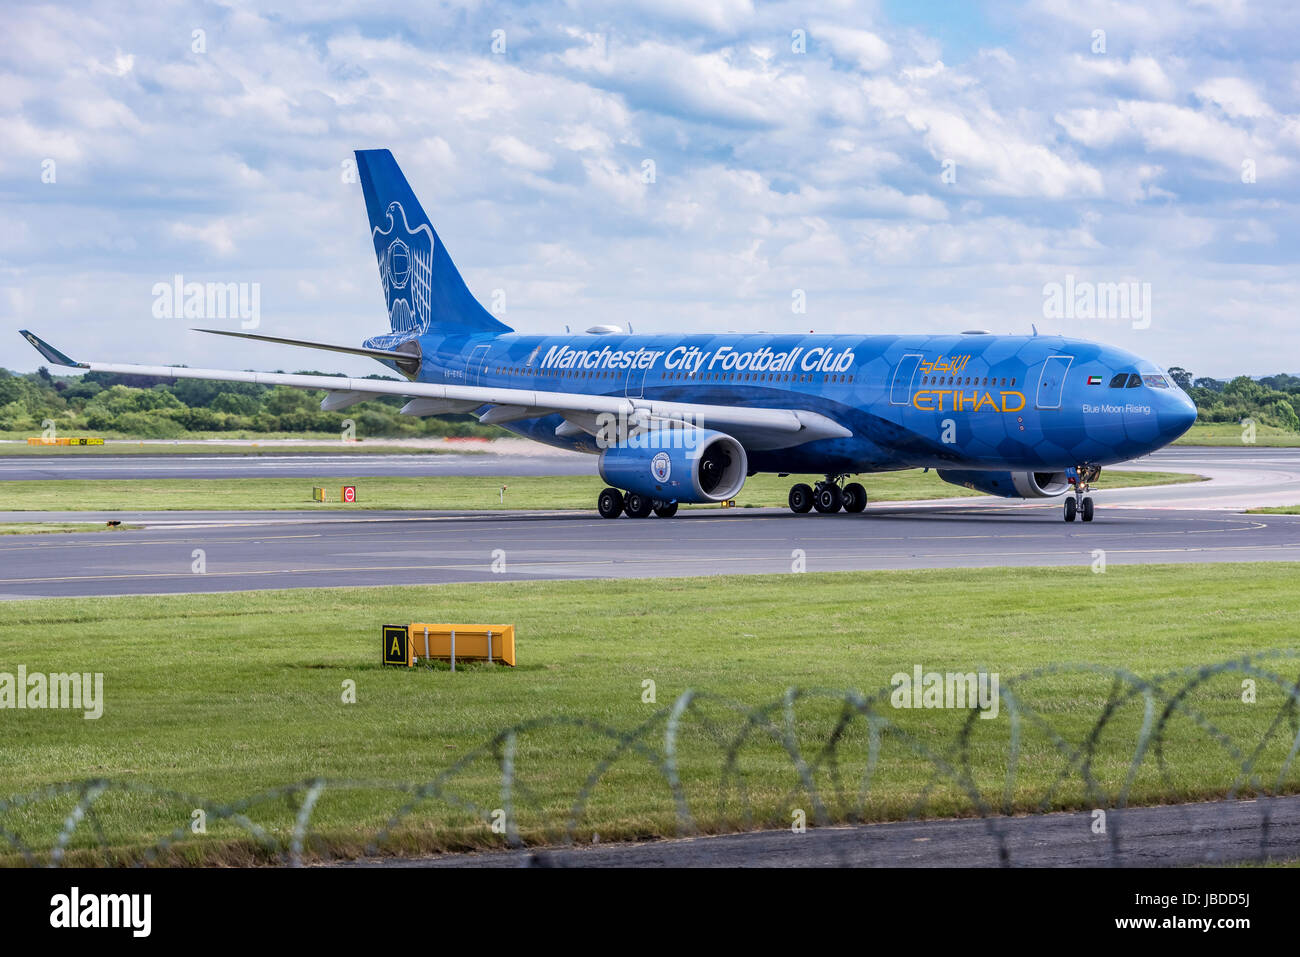 Etihad Airbus A330 Manchester City FC plane - Stock Image